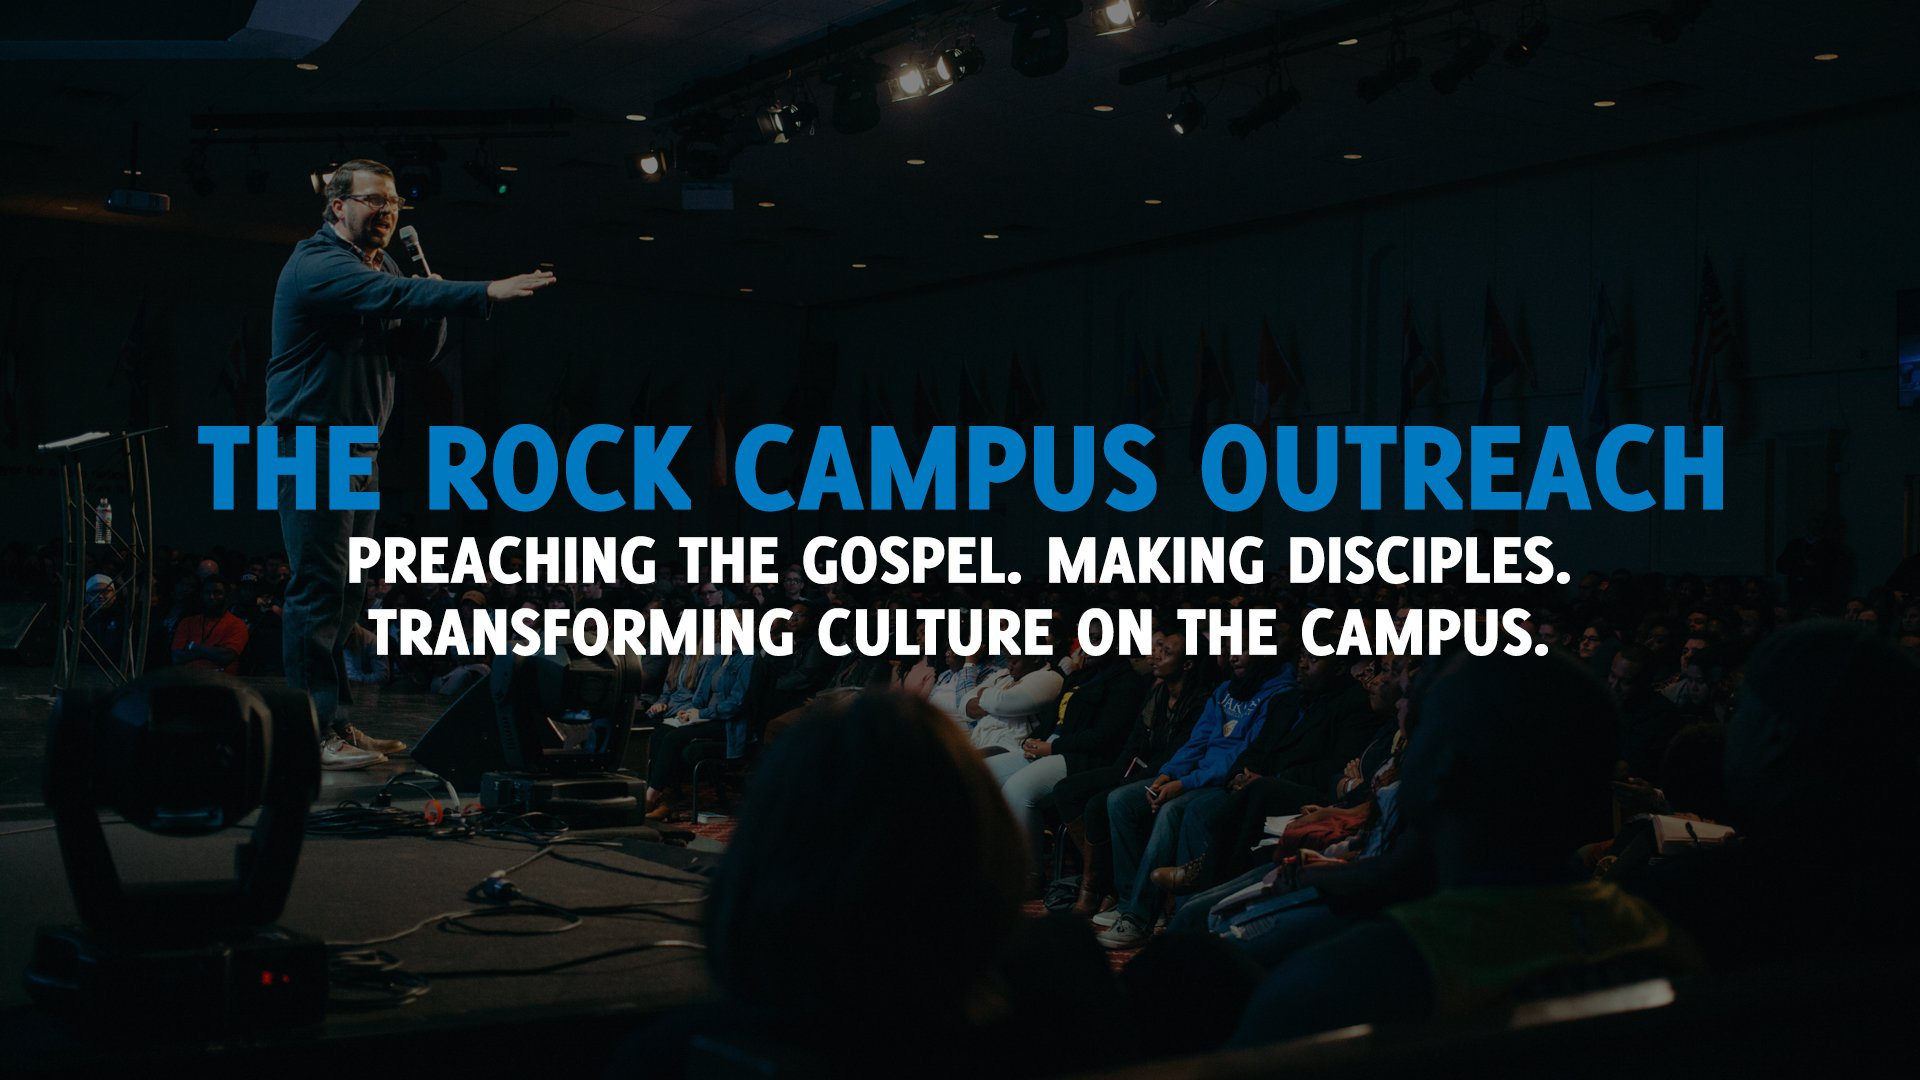 The Rock Campus Home Image New